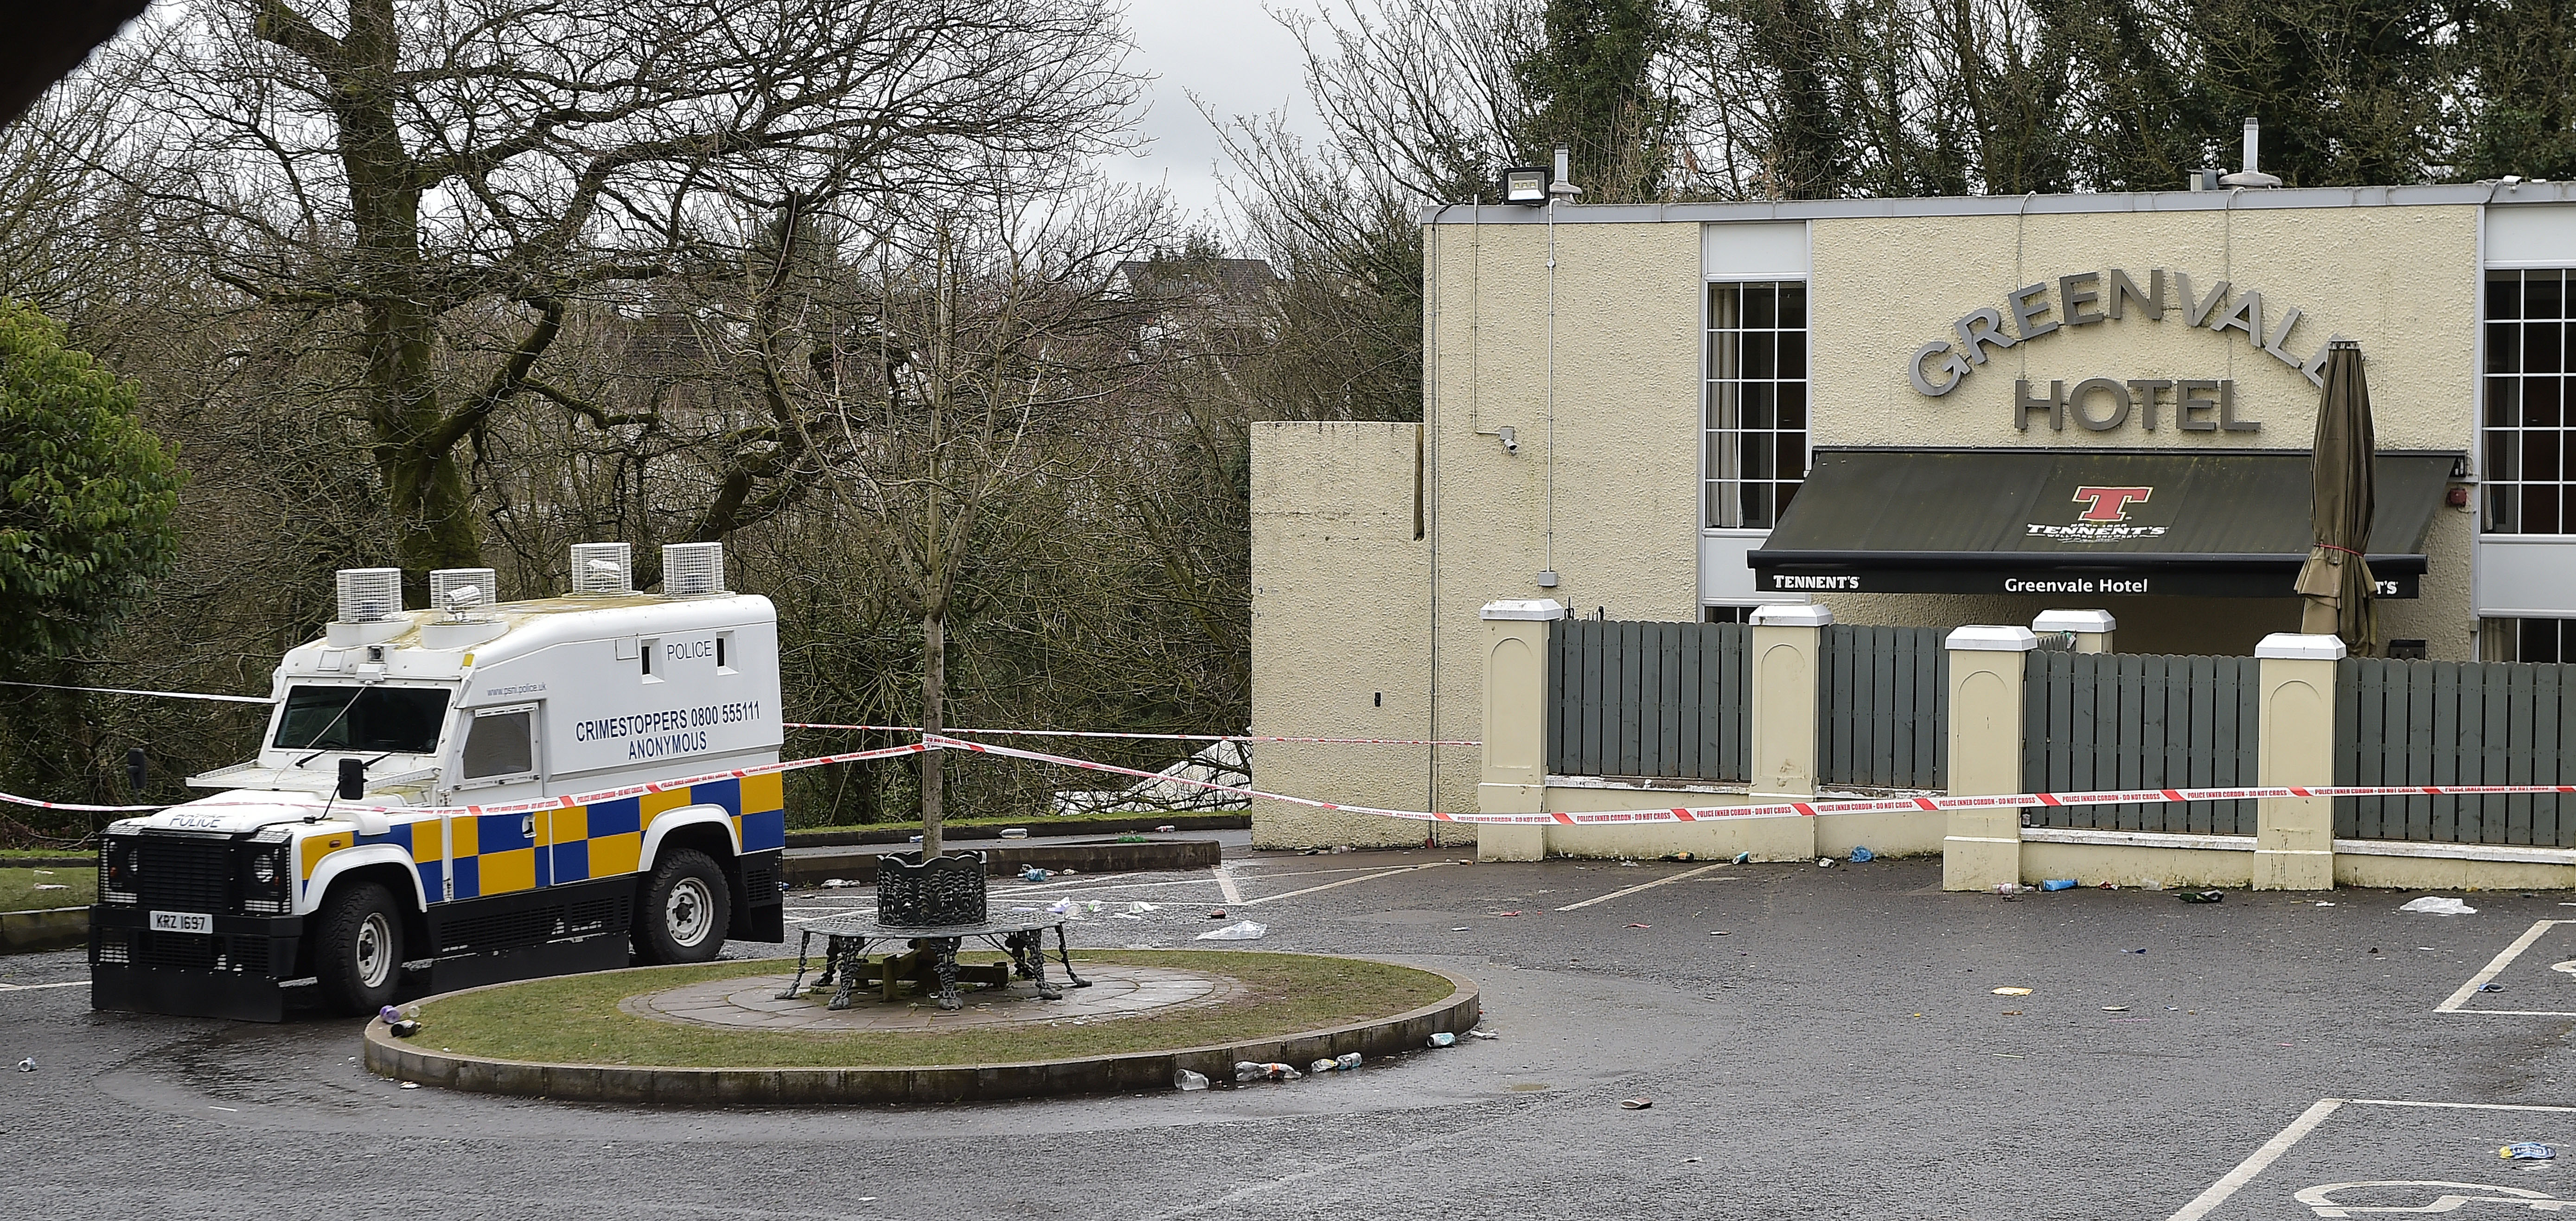 COOKSTOWN, NORTHERN IRELAND - MARCH 18: The scene outside the Greenvale Hotel night club on March 18, 2019 in Cookstown, Northern Ireland. (Charles McQuillan/Getty Images)